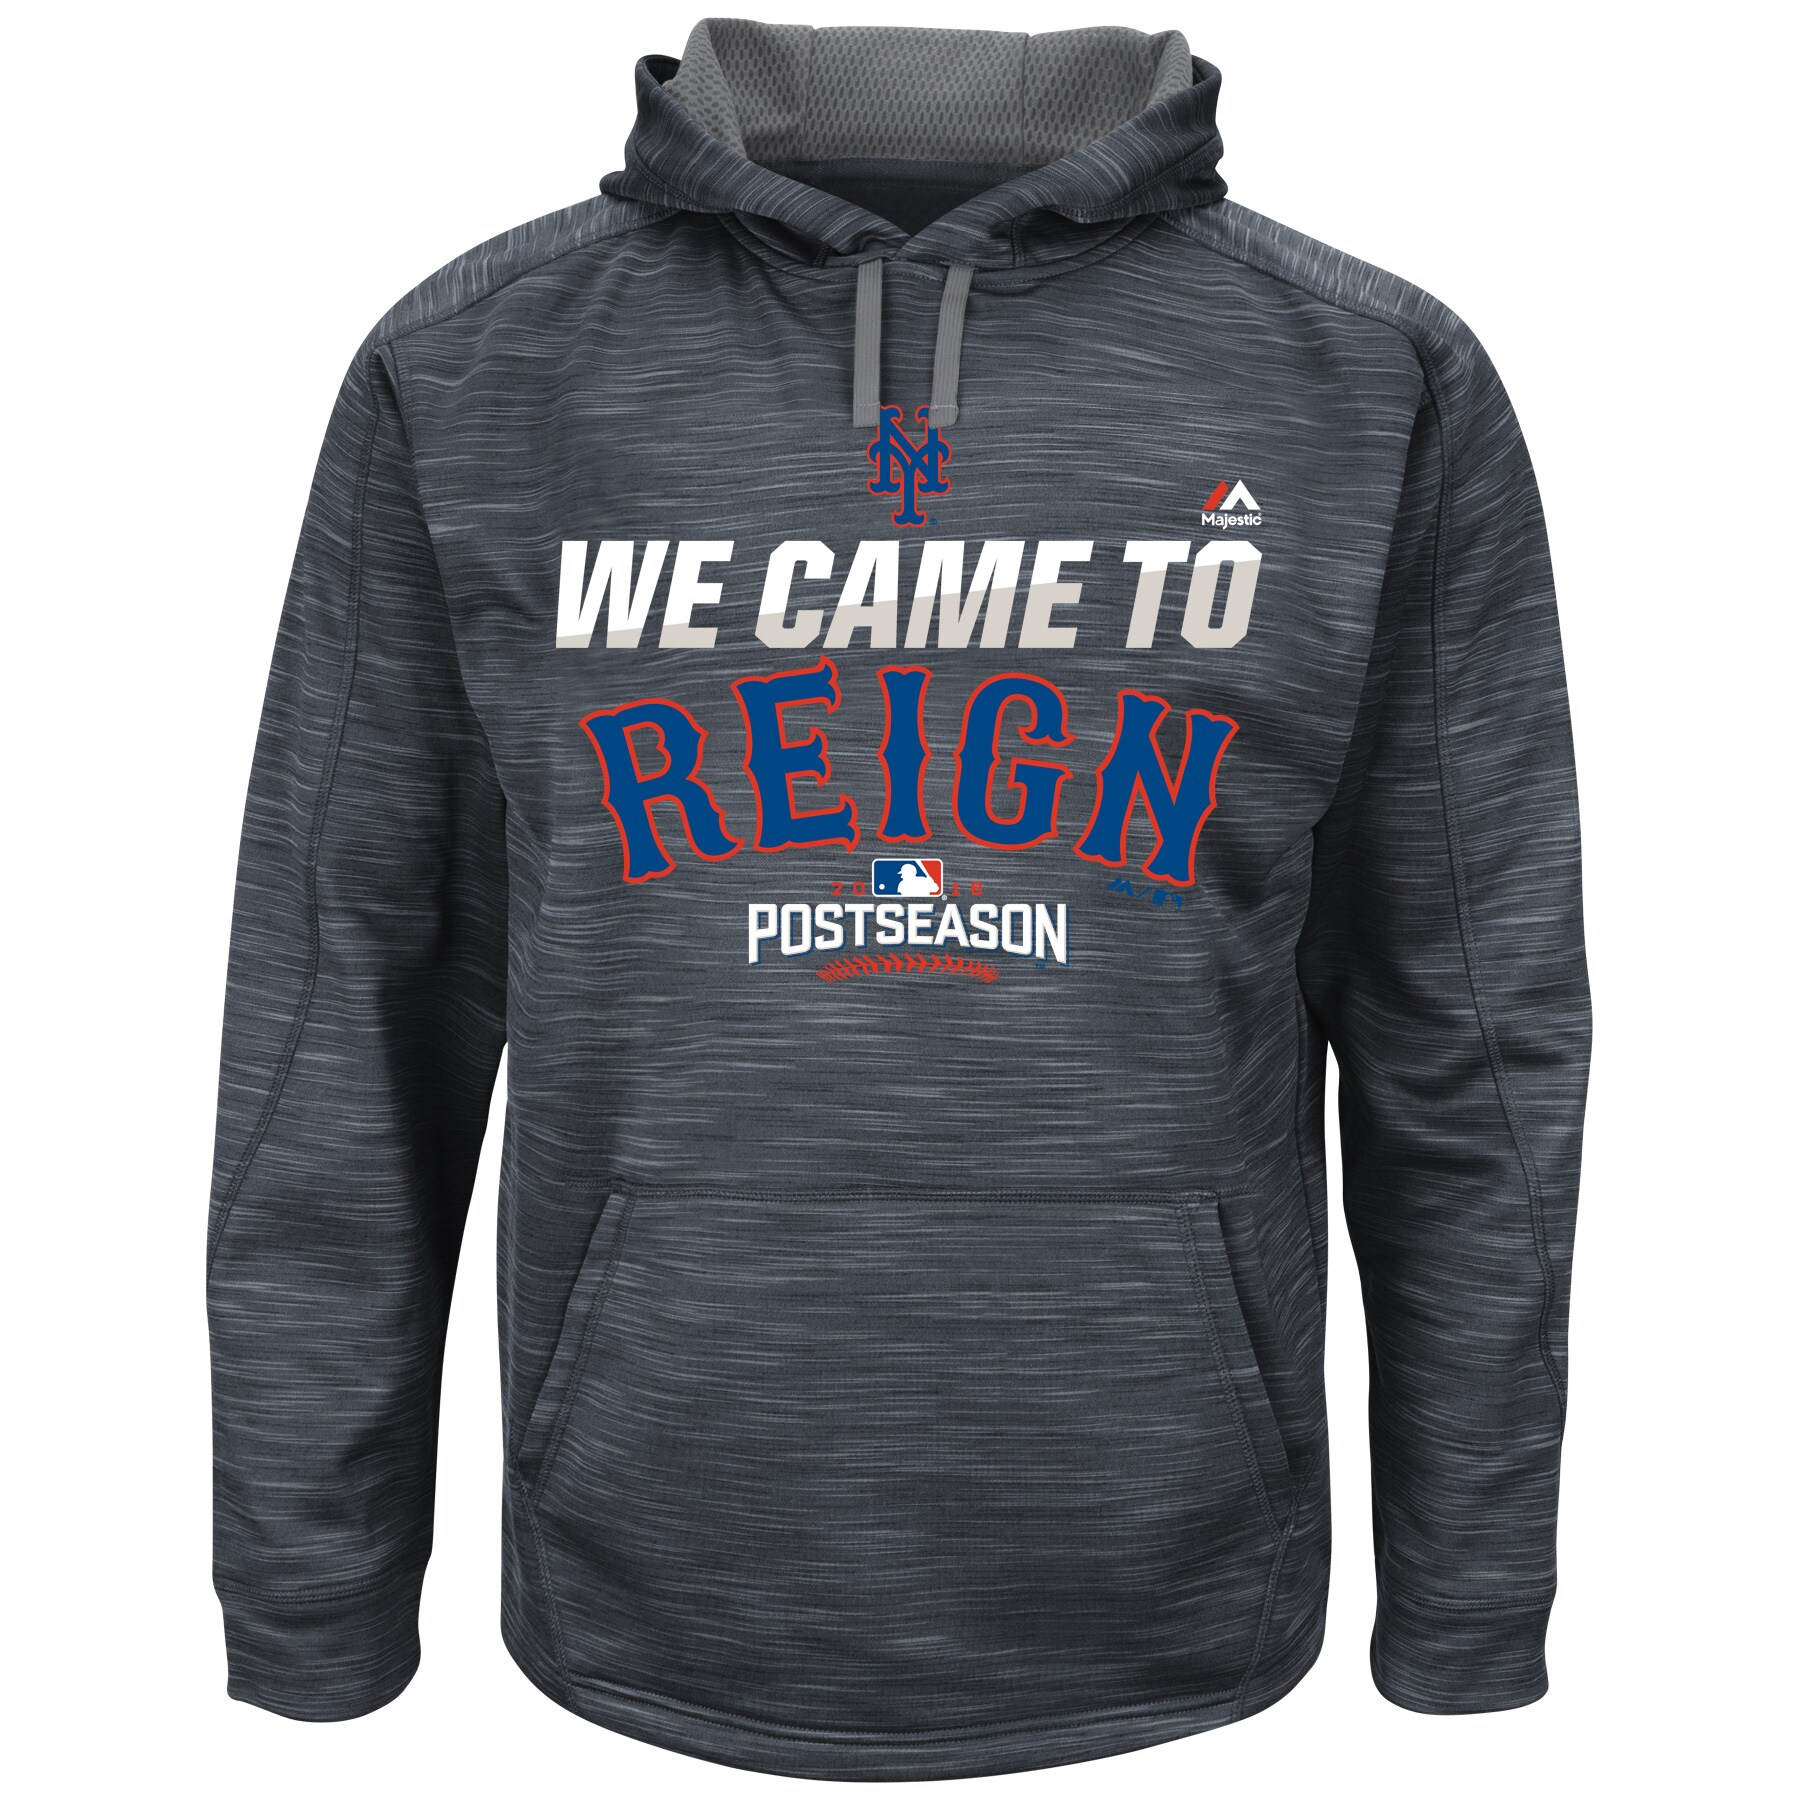 New York Mets Majestic 2016 Postseason Authentic Collection Came To Reign Streak Hoodie - Graphite